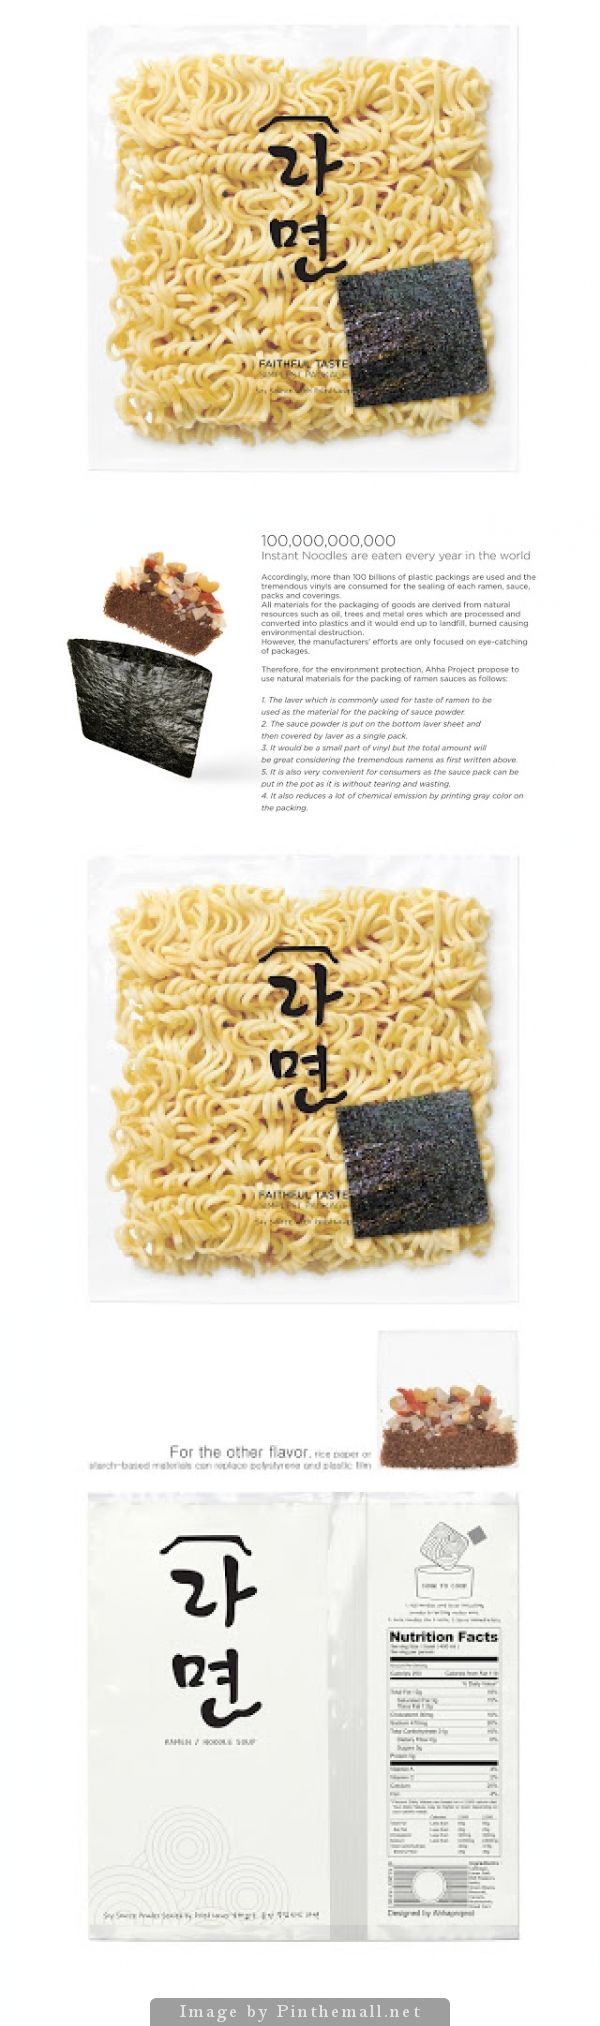 Ramen anyone? (a staggering amount of instant noodles) Love this packaging design concept curated by Packaging Diva PD created via http://www.packagingoftheworld.com/2014/10/simple-ramen-concept.html